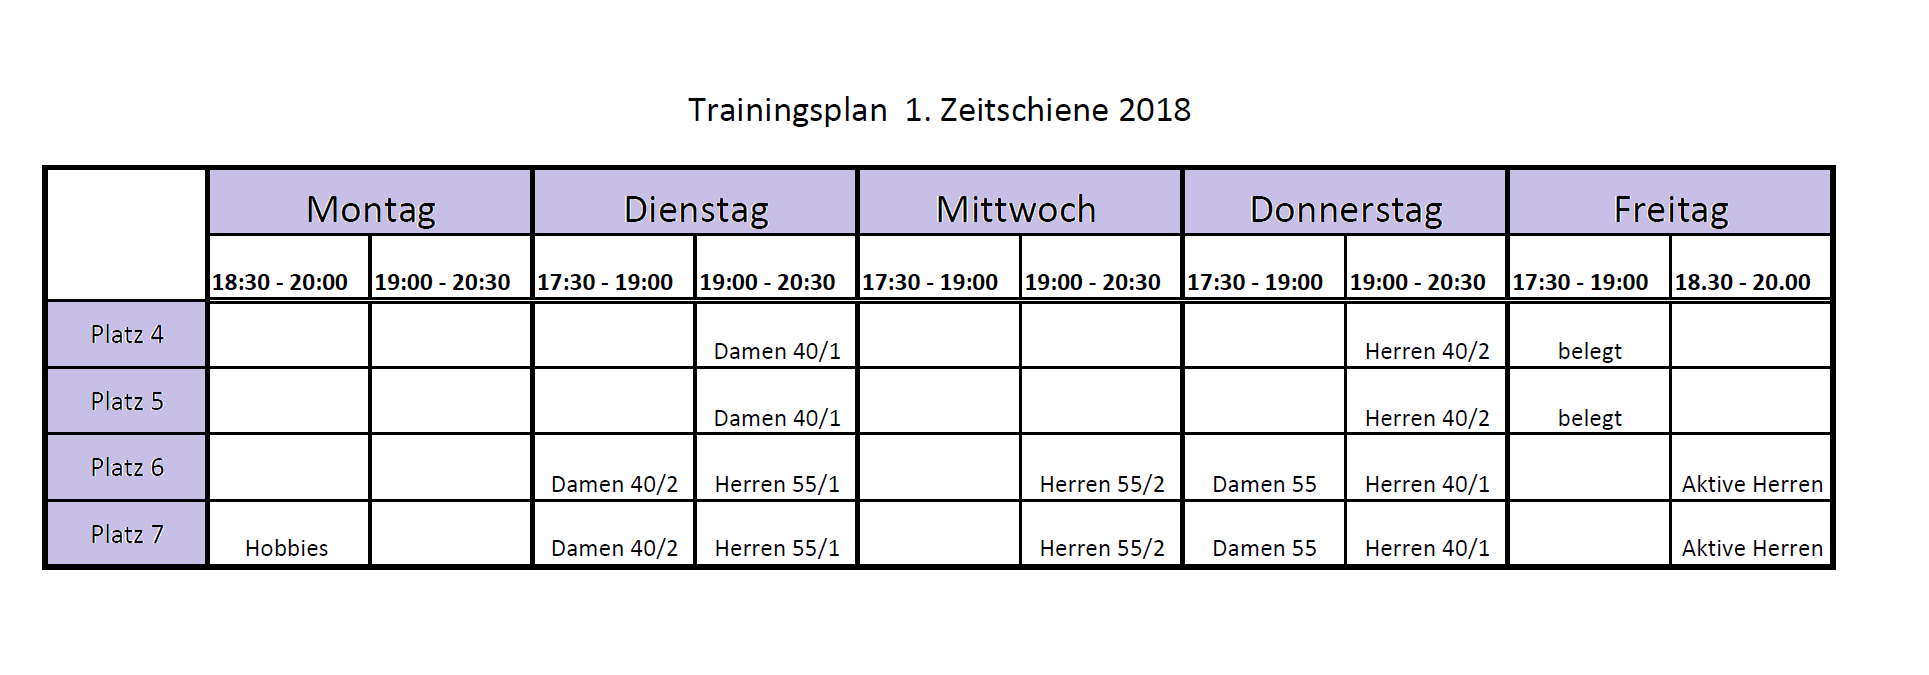 Traininsplan 2018 1.ZS